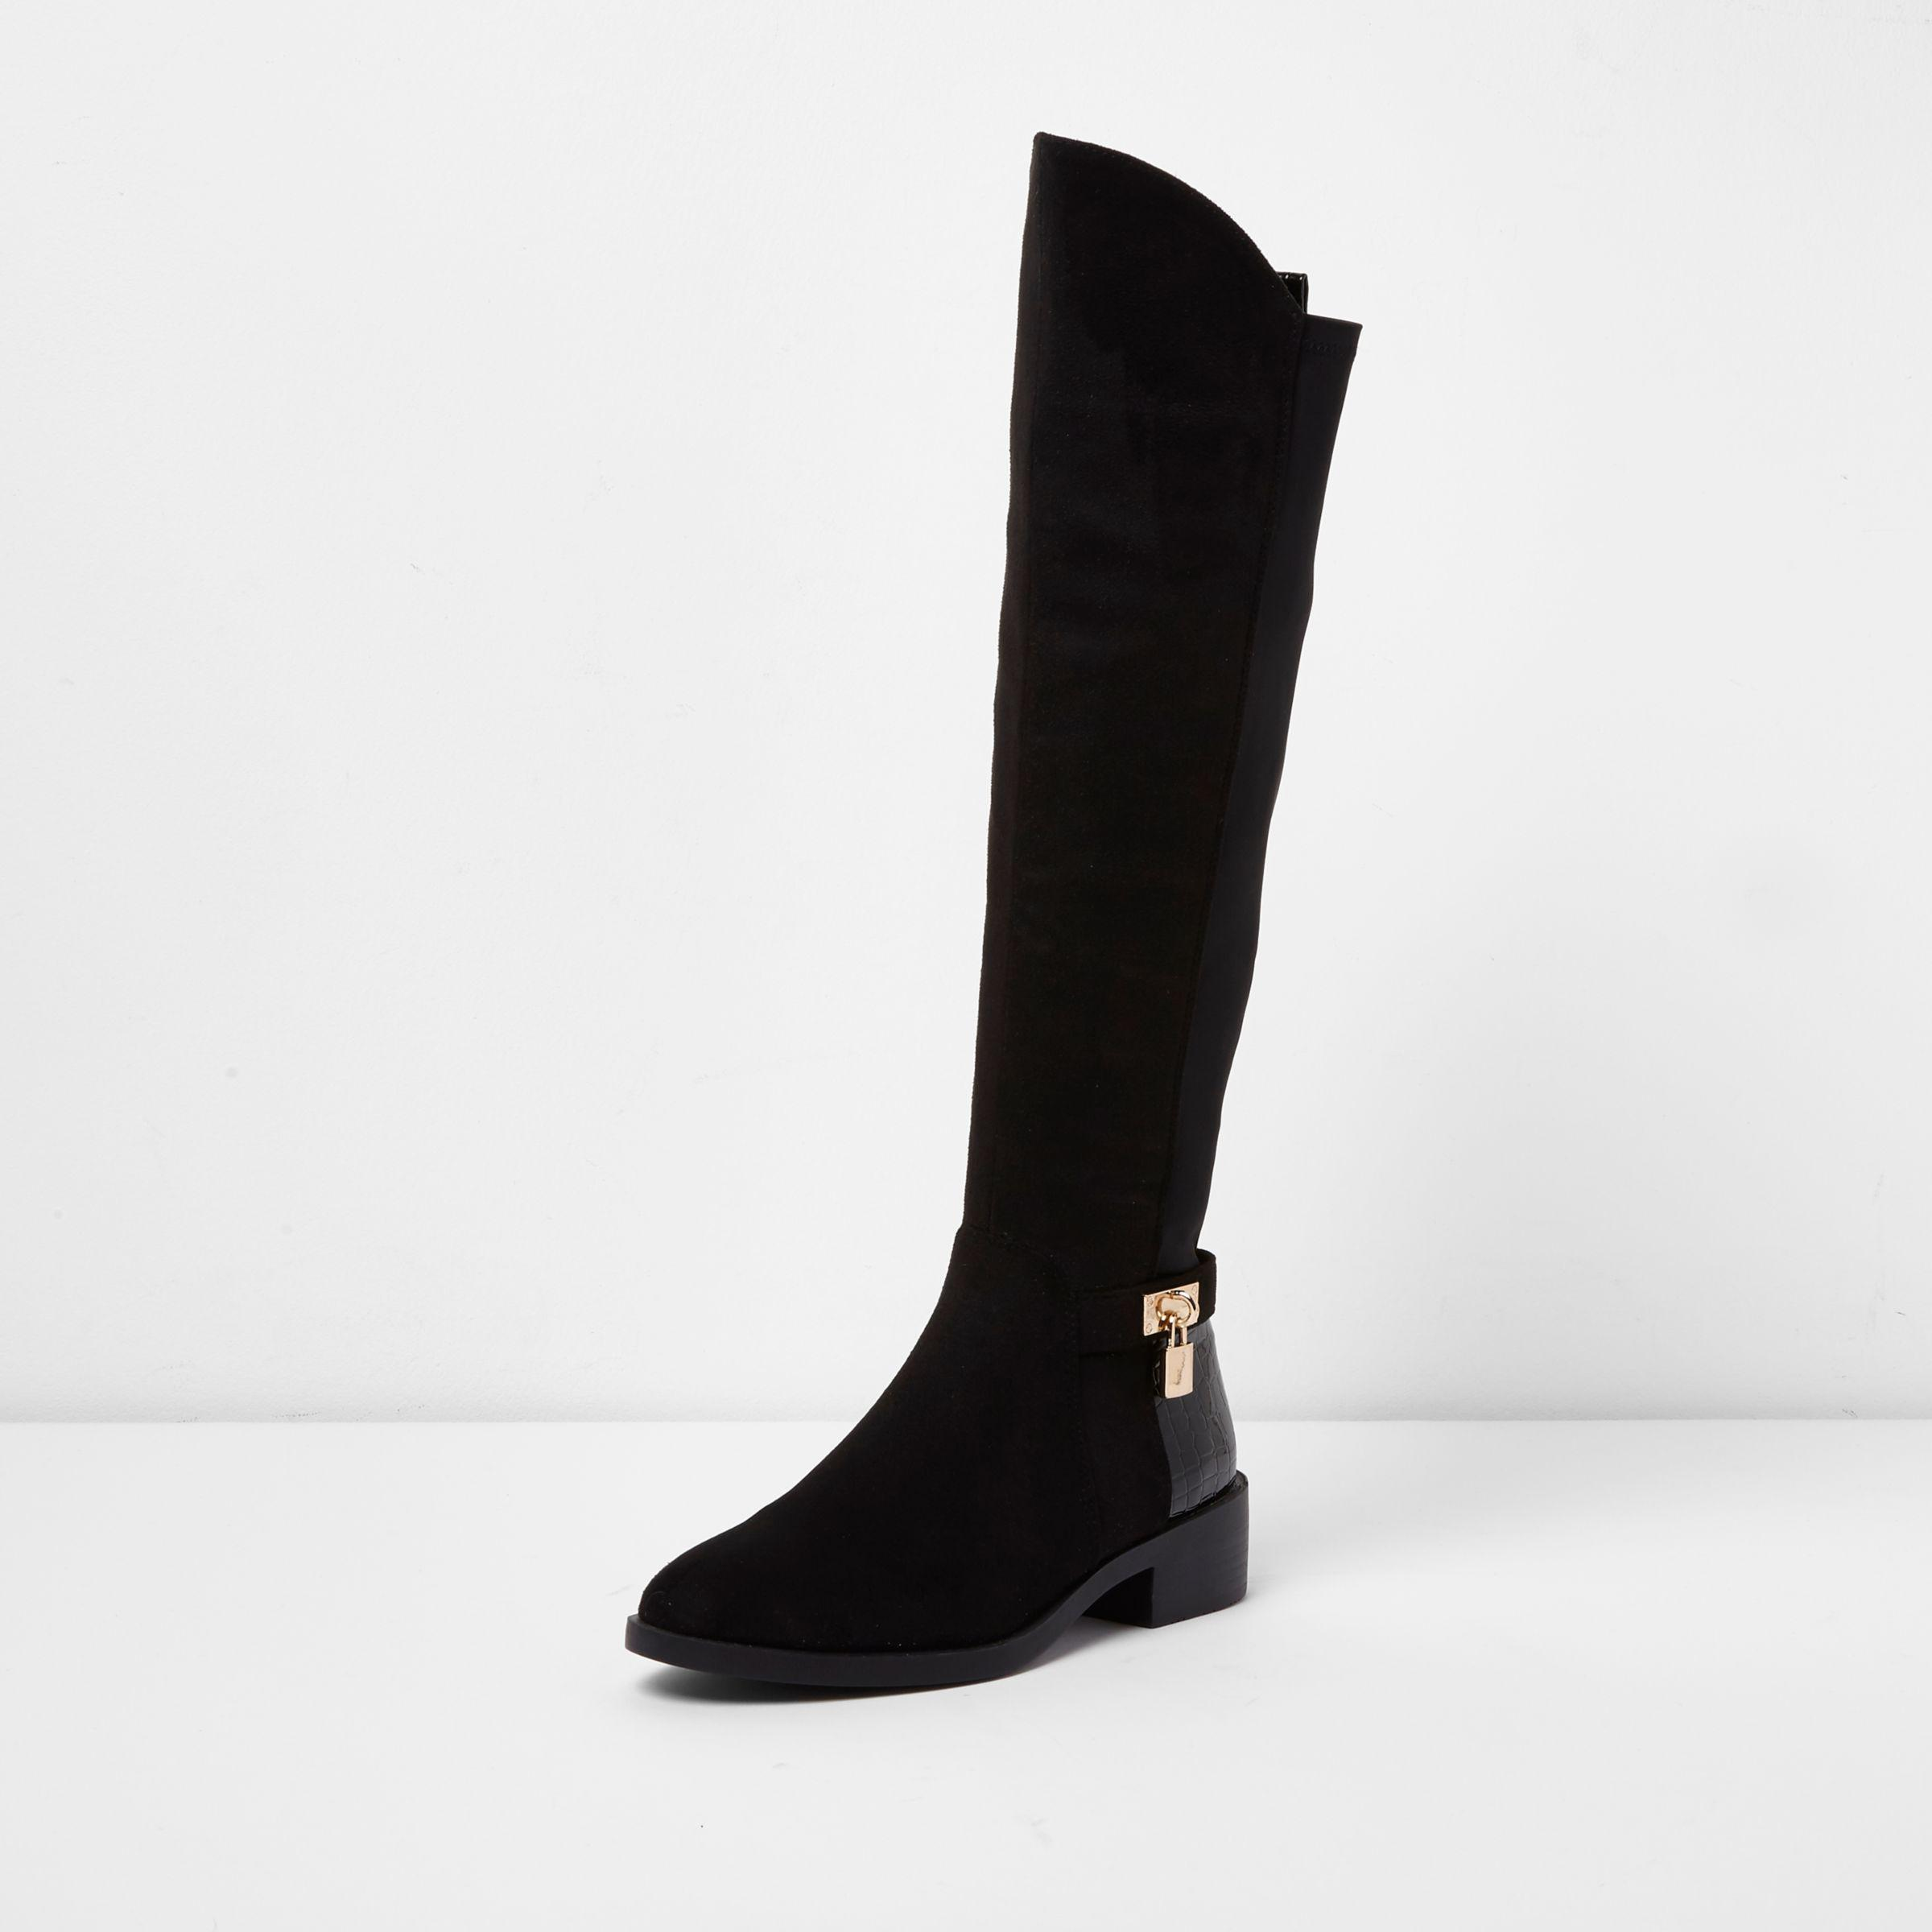 a8f881e8c18 River Island Black Wide Fit Knee High Riding Boots in Black - Lyst